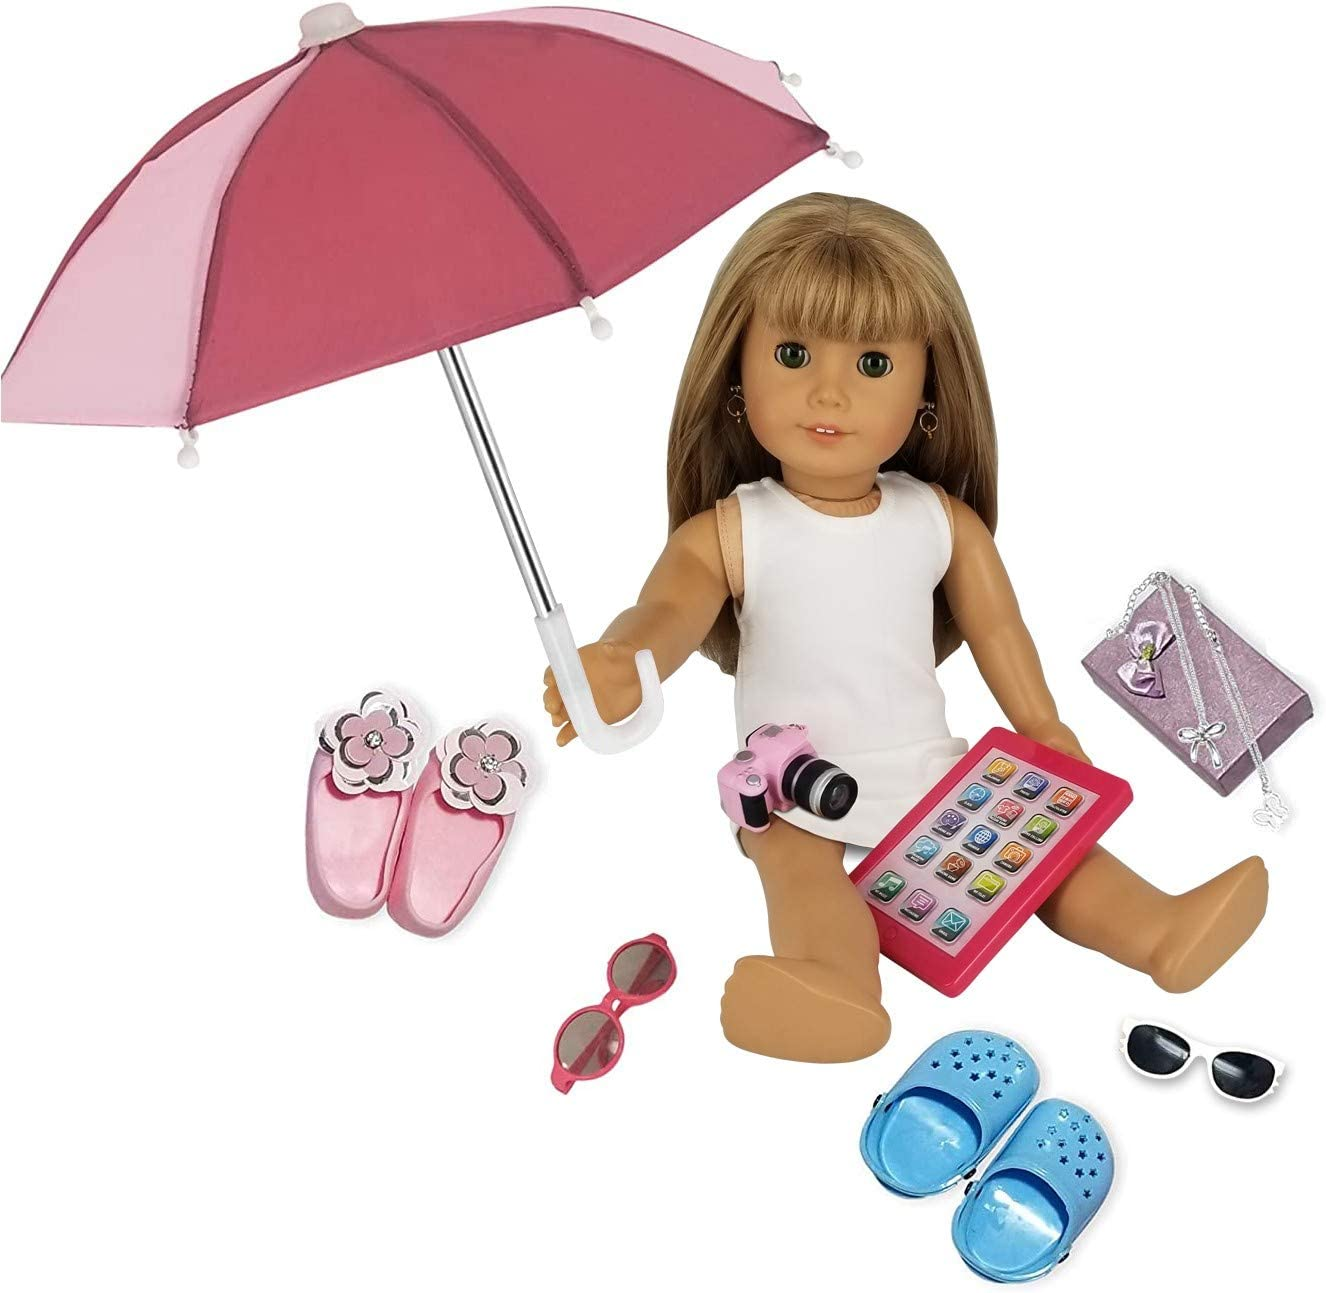 "PZAS Toys Fits American Girl Doll Accessories - 18"" Doll Accessories 11 Piece Set - Includes Doll iPad, Doll Umbrella, Doll Shoes, Jewelry, Camera and Doll Carrier!"